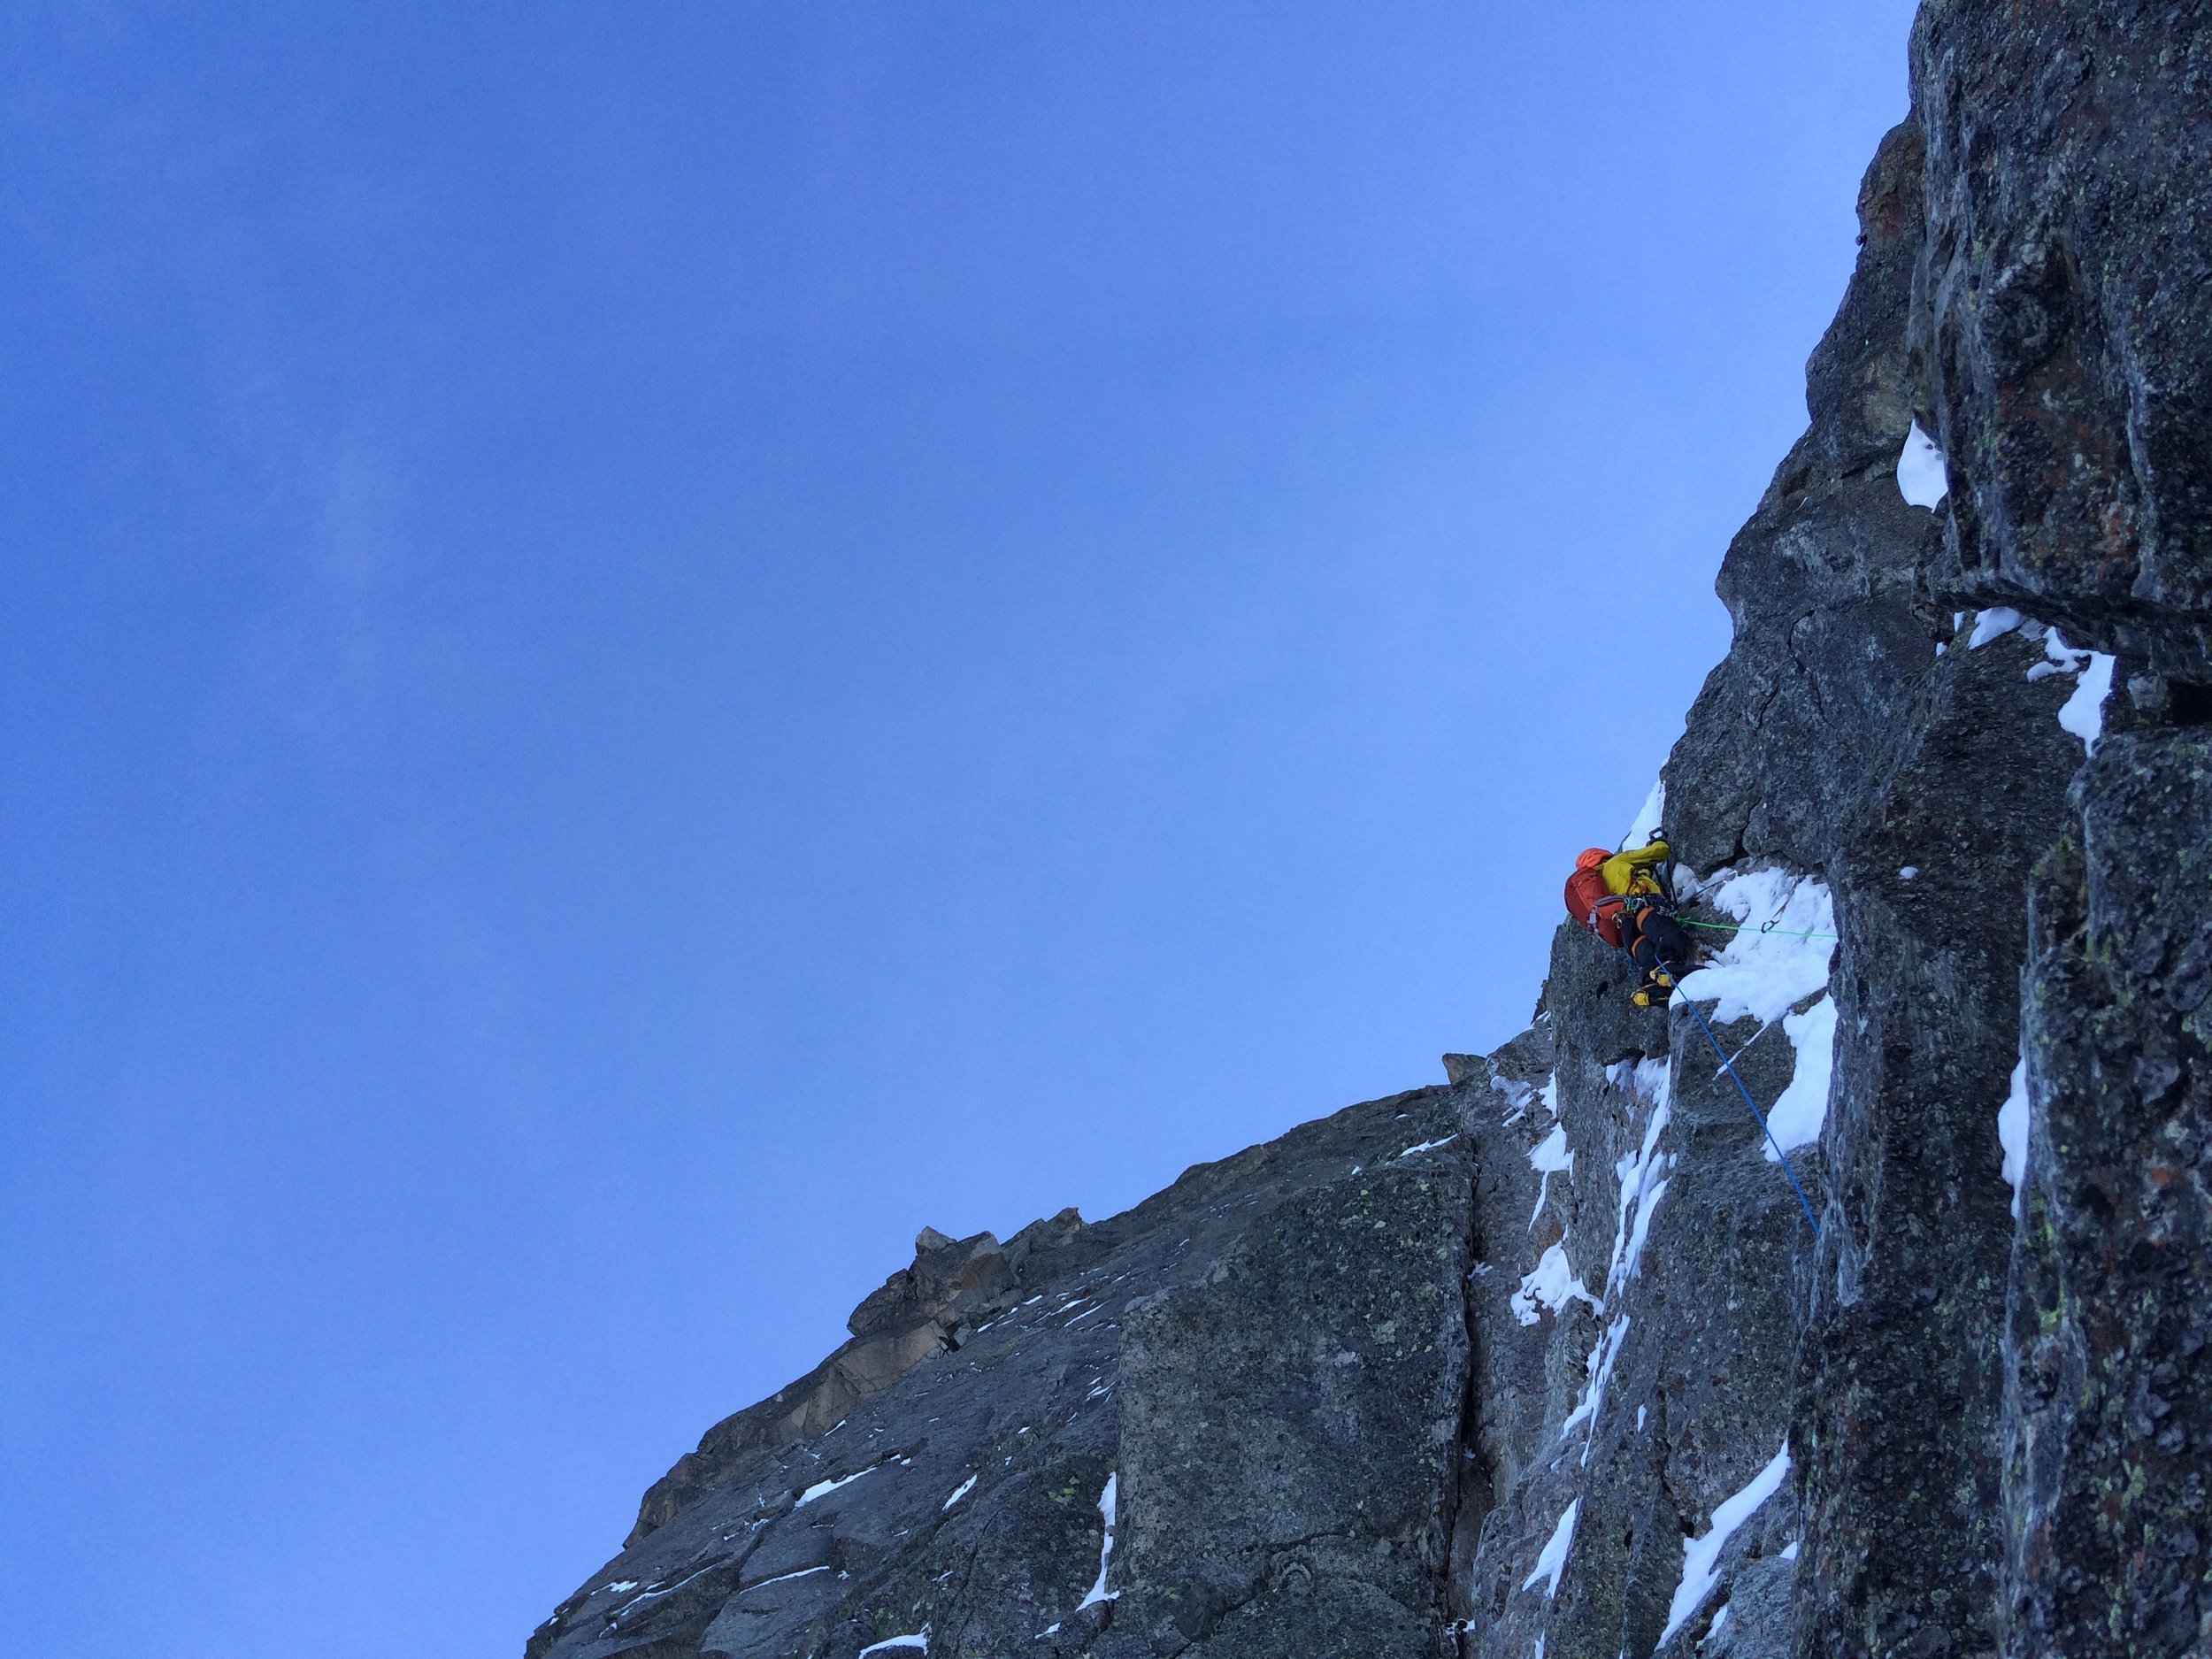 Dave Searle styling the mixed crux of the route. We found little or no ice on our pitches. Dry year in Chamonix.